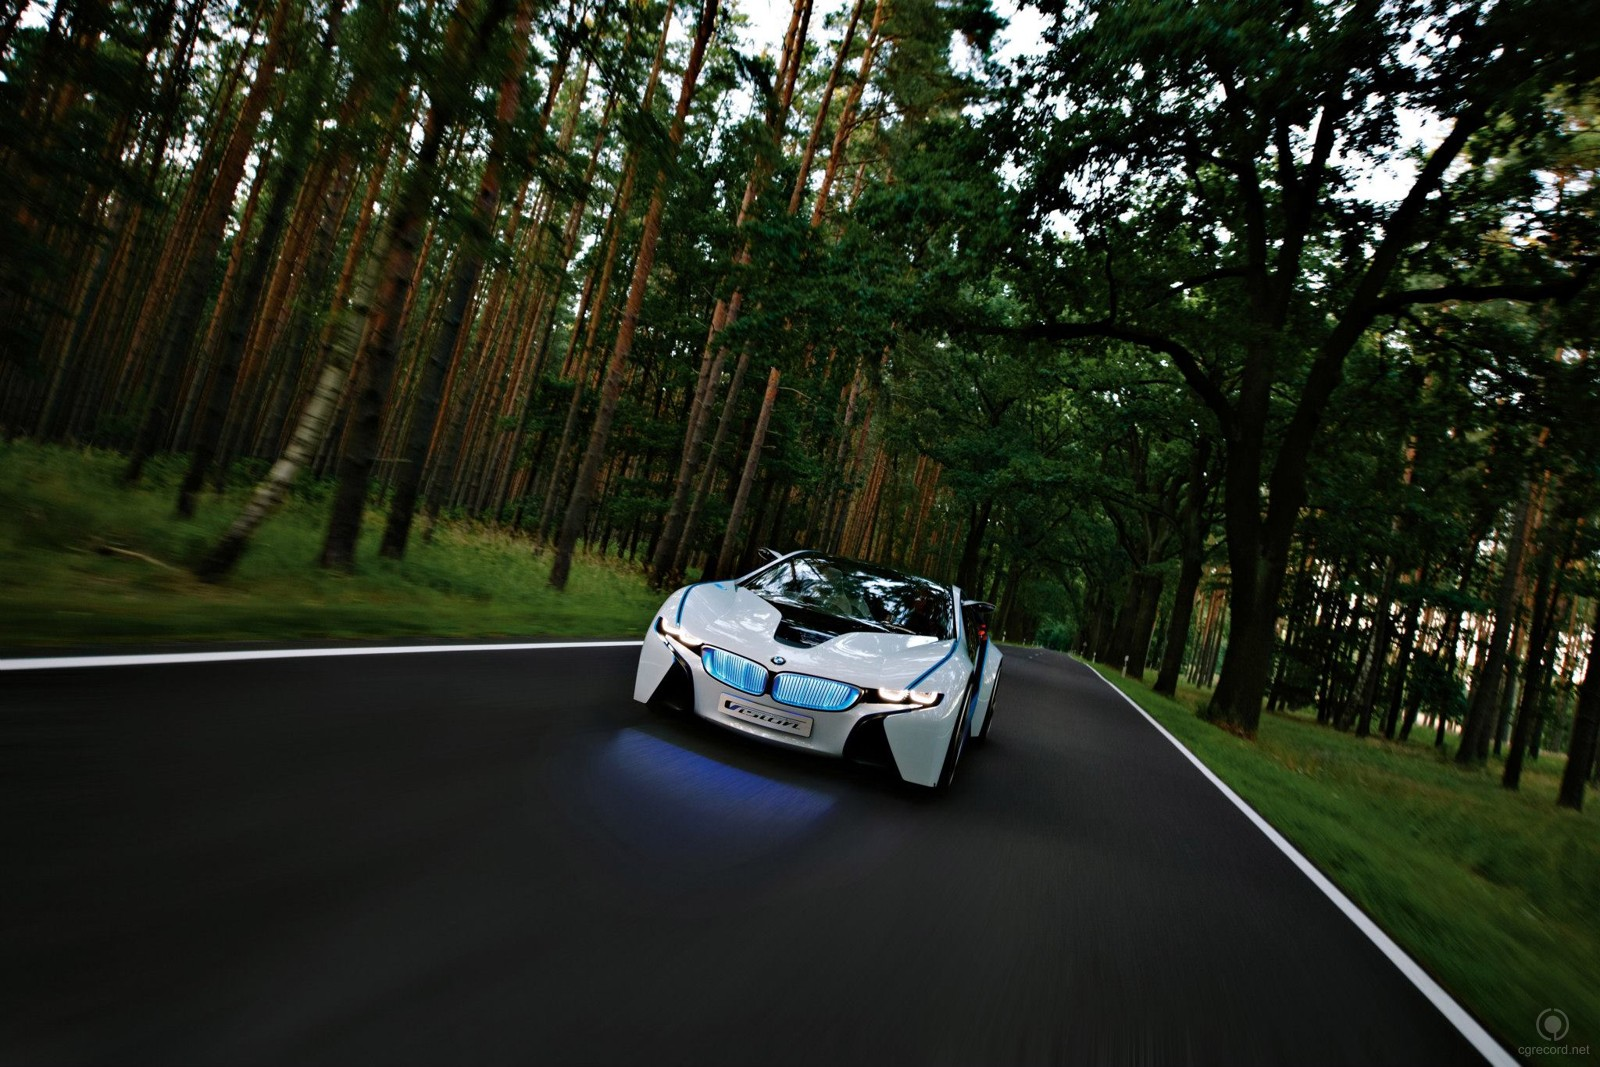 BMW Vision EfficientDynamicsi_automotive_3dart